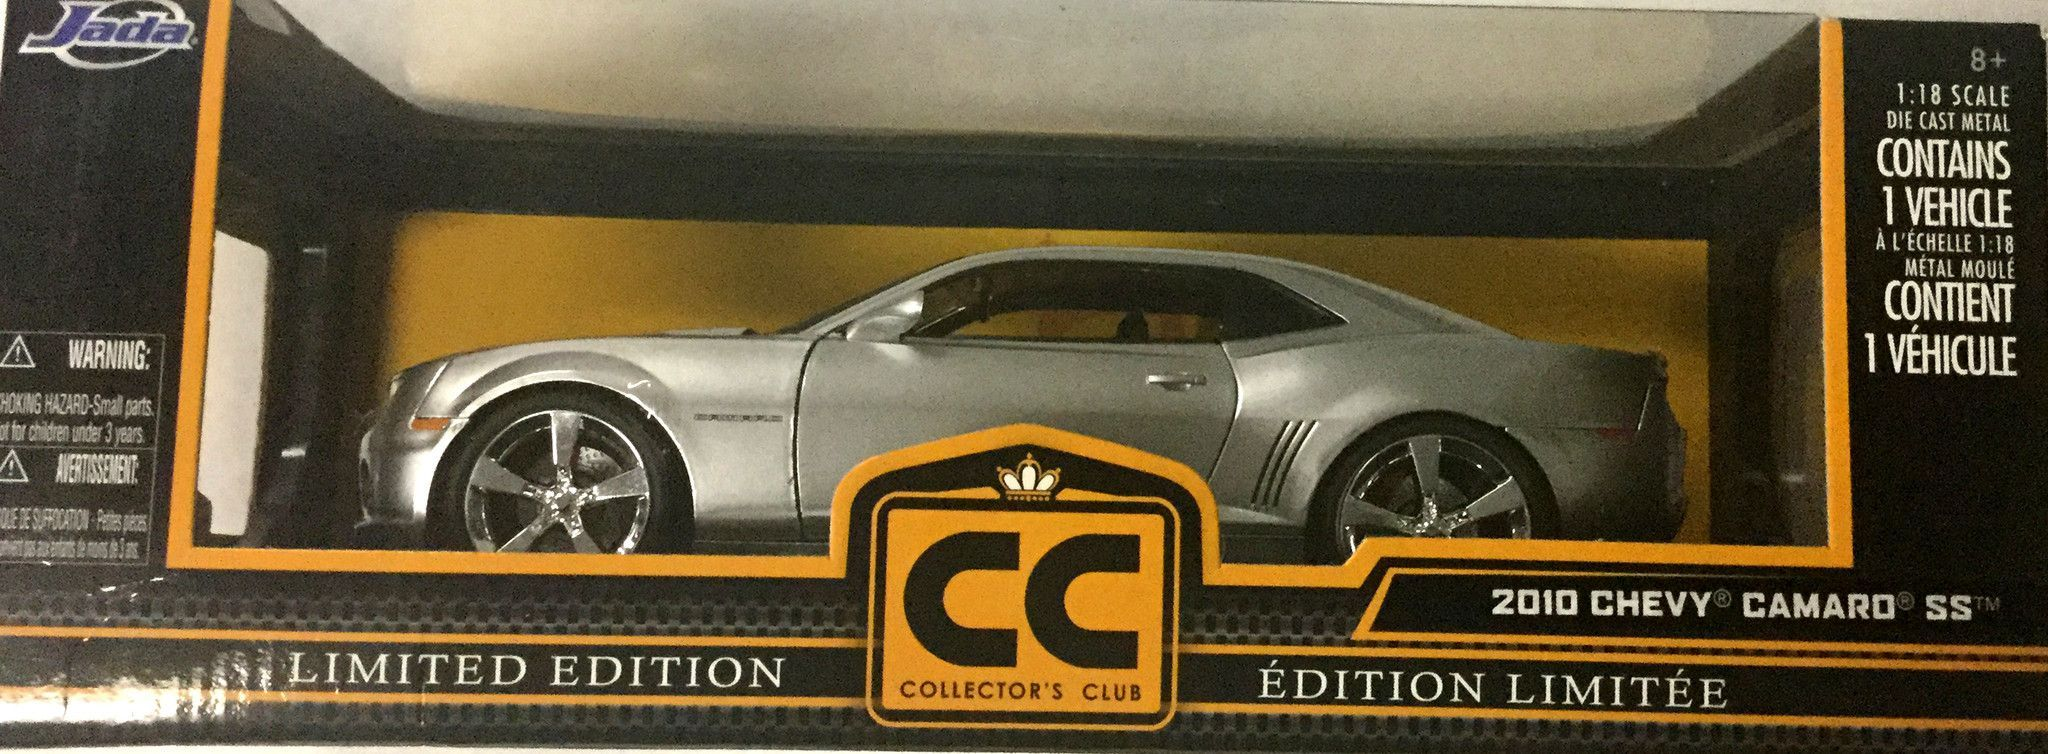 Diecast king maisto 1998 chevrolet corvette indy 500 pace car - Jada 2010 Chevy Camaro Ss 1 18 Scale Diecast Collectible Model